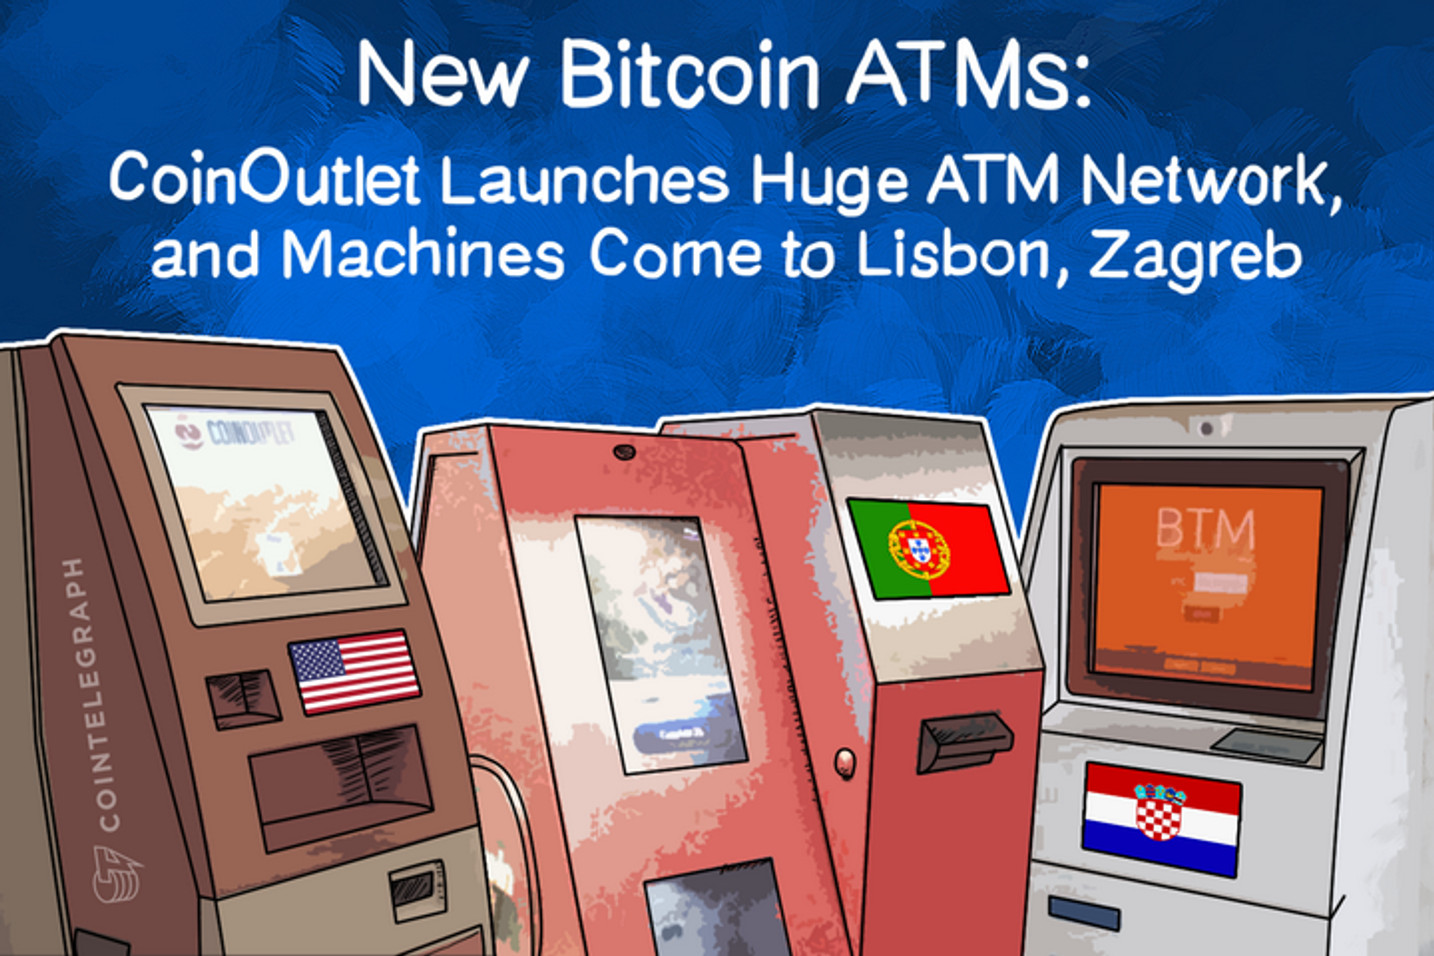 New Bitcoin ATMs: CoinOutlet Launches Huge ATM Network, and Machines Come to Lisbon, Zagreb